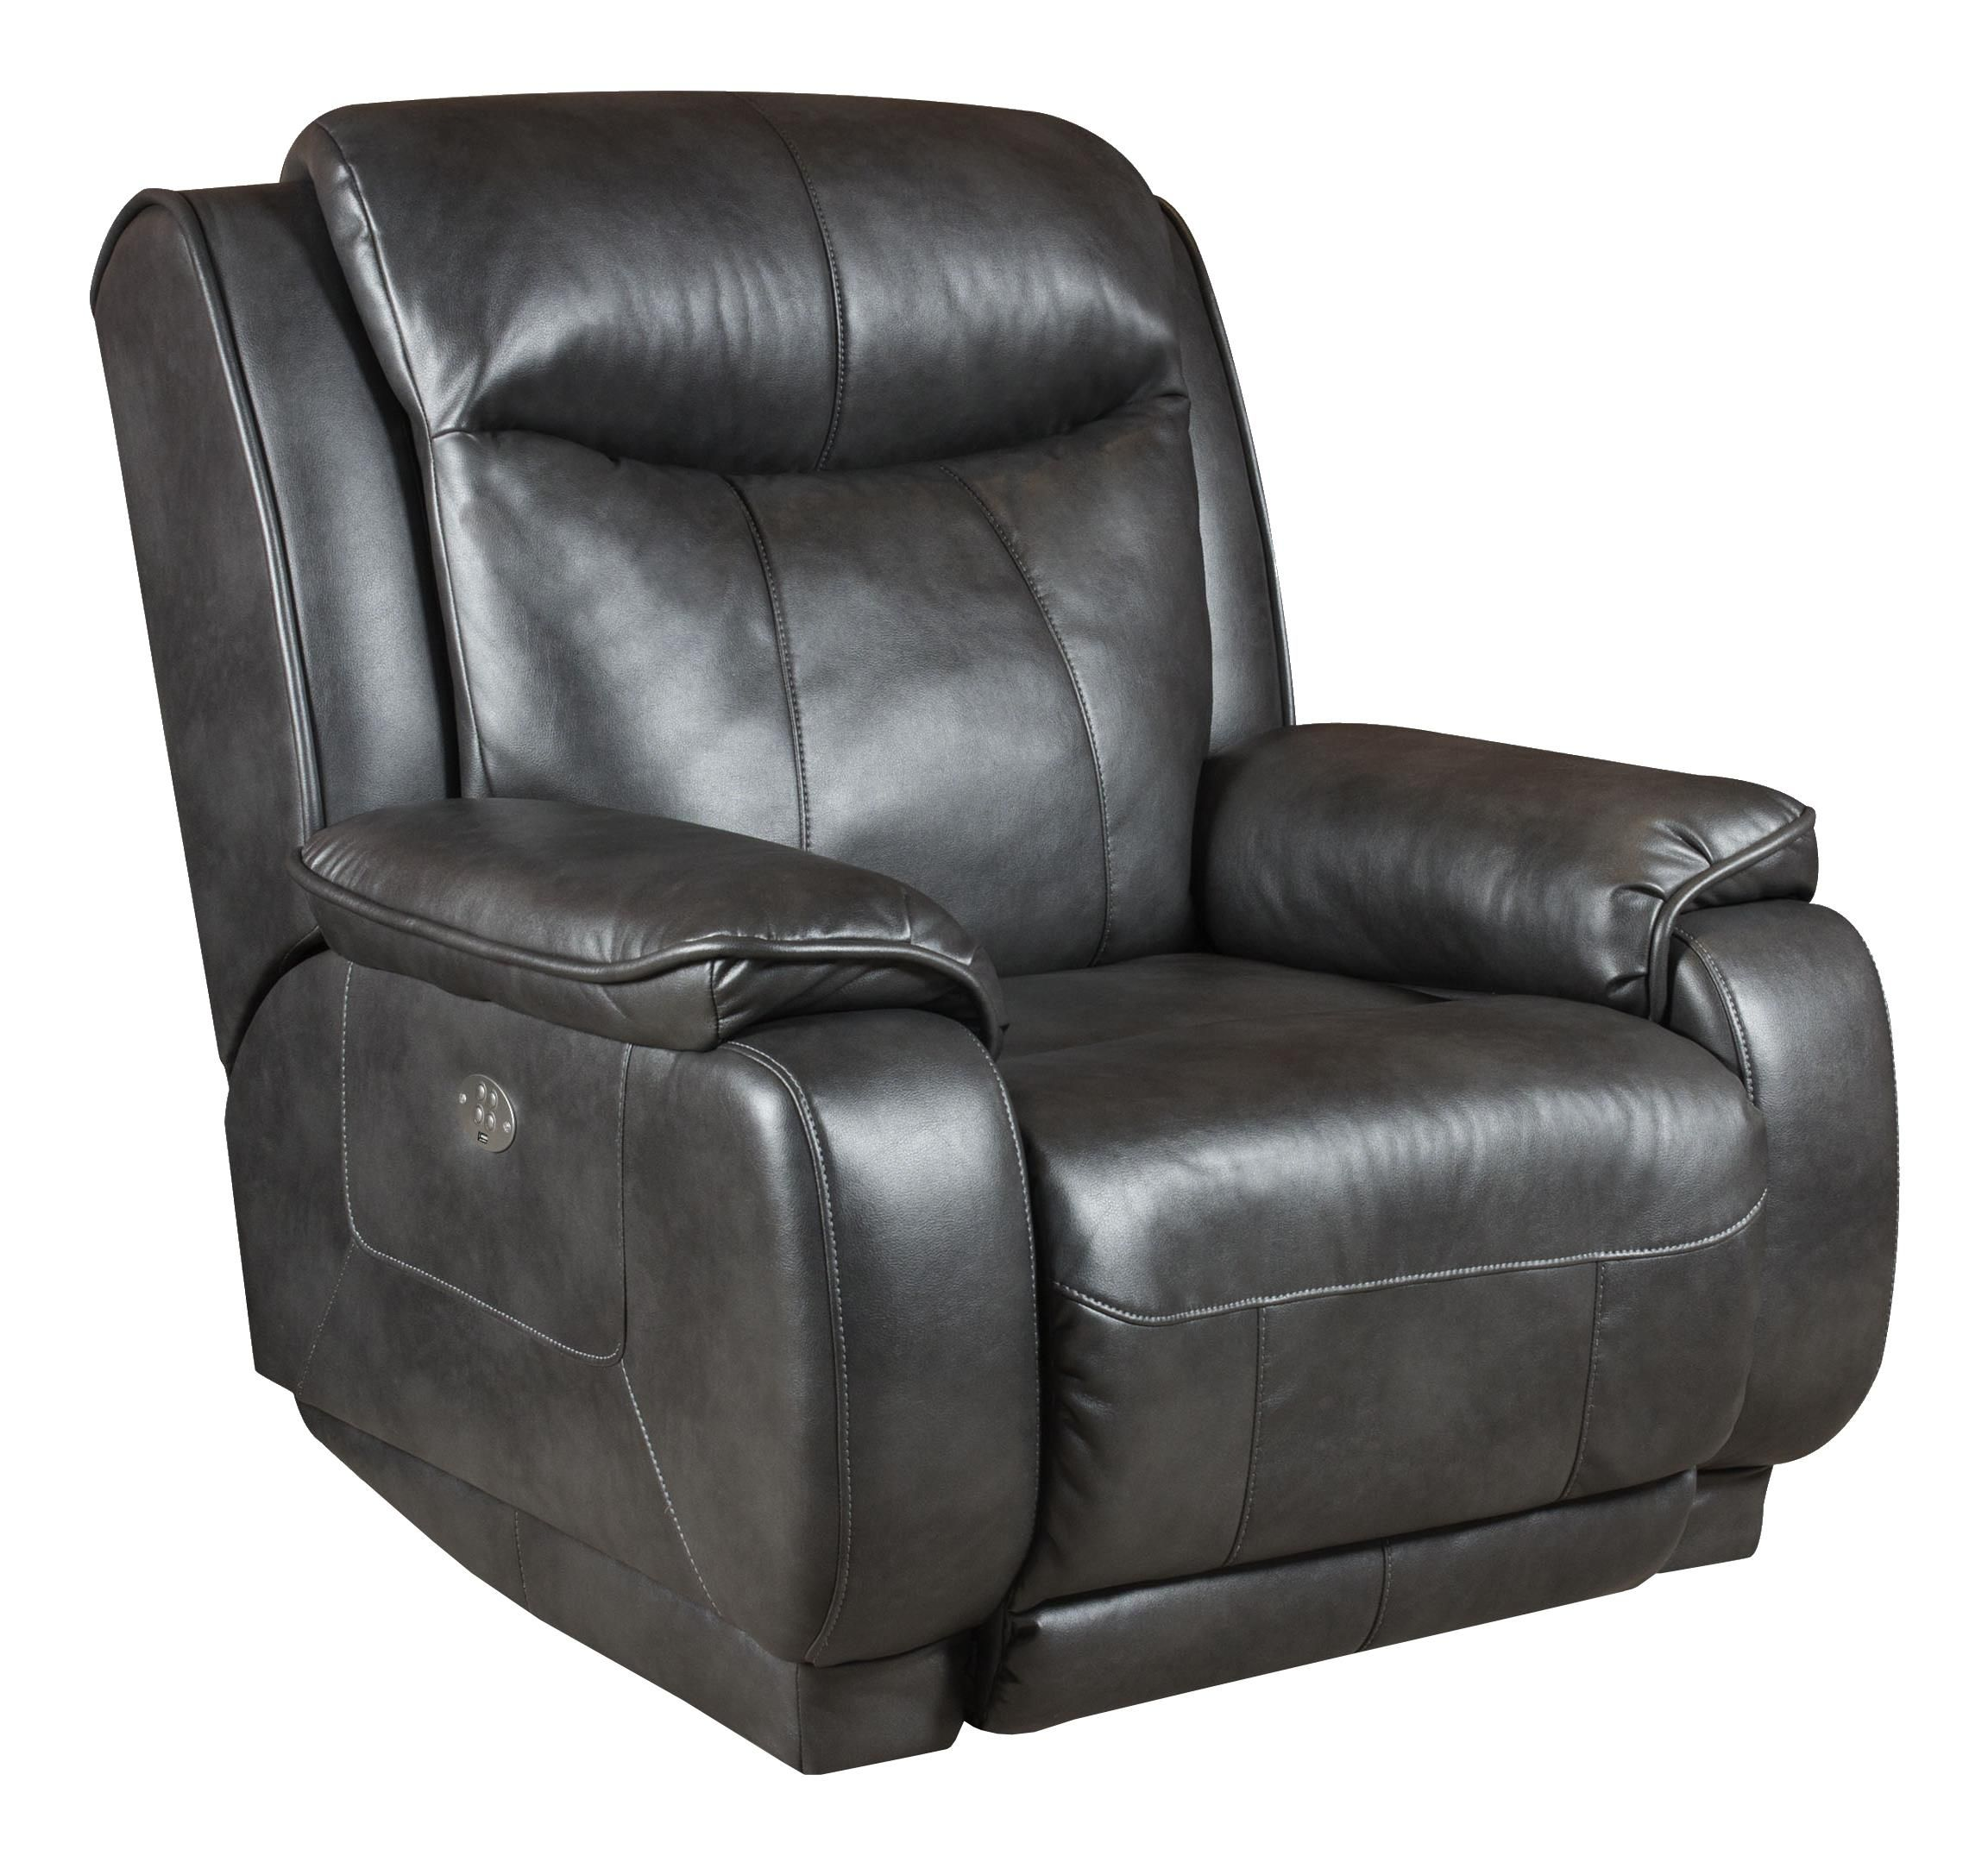 Velocity Wall Hugger Recliner With Power Headrest By Southern Motion Wall Hugger Recliners Recliner Recliner With Ottoman